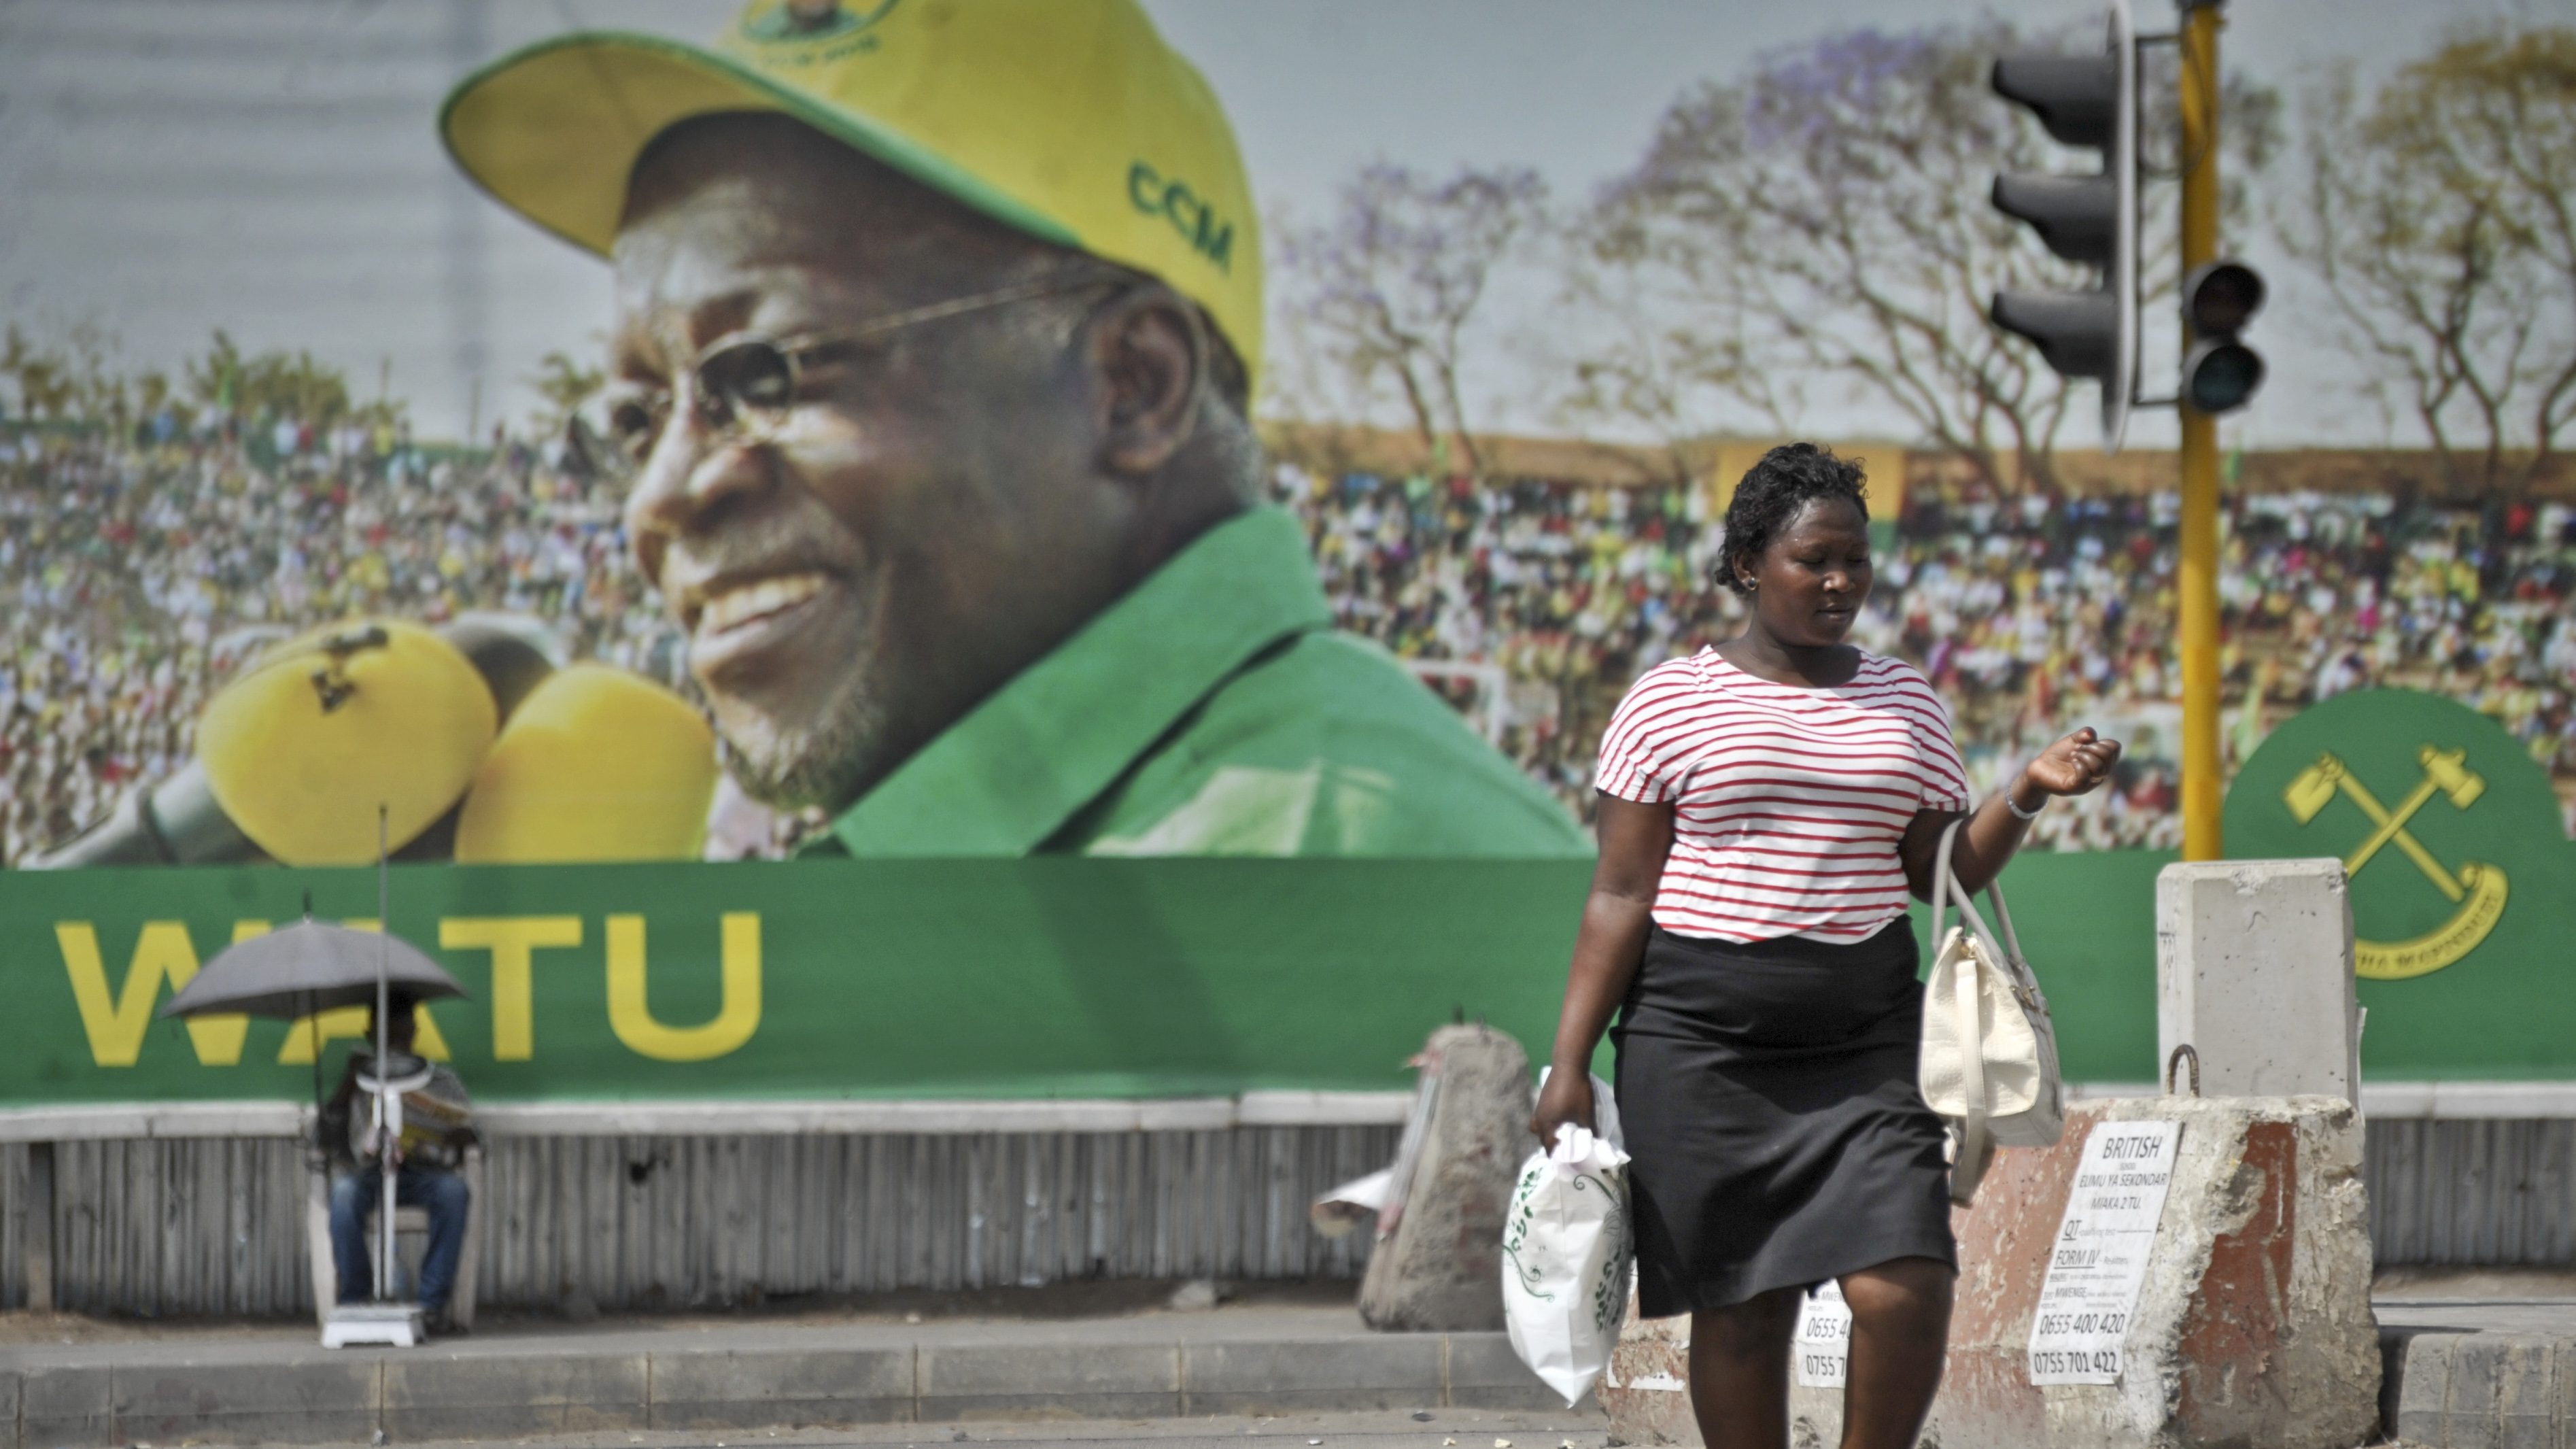 A Tanzanian woman walks past a billboard for the ruling party's presidential candidate John Magufuli, in Dar es Salaam, Tanzania Monday, Oct. 26, 2015. Tanzanians turned out in large numbers Sunday to vote in general elections in which the ruling party, in power for decades, faces a strong challenge from a united opposition, with the ruling party's candidate John Magufuli battling former Prime Minister Edward Lowassa, in a presidential race many analysts say is too close to predict.